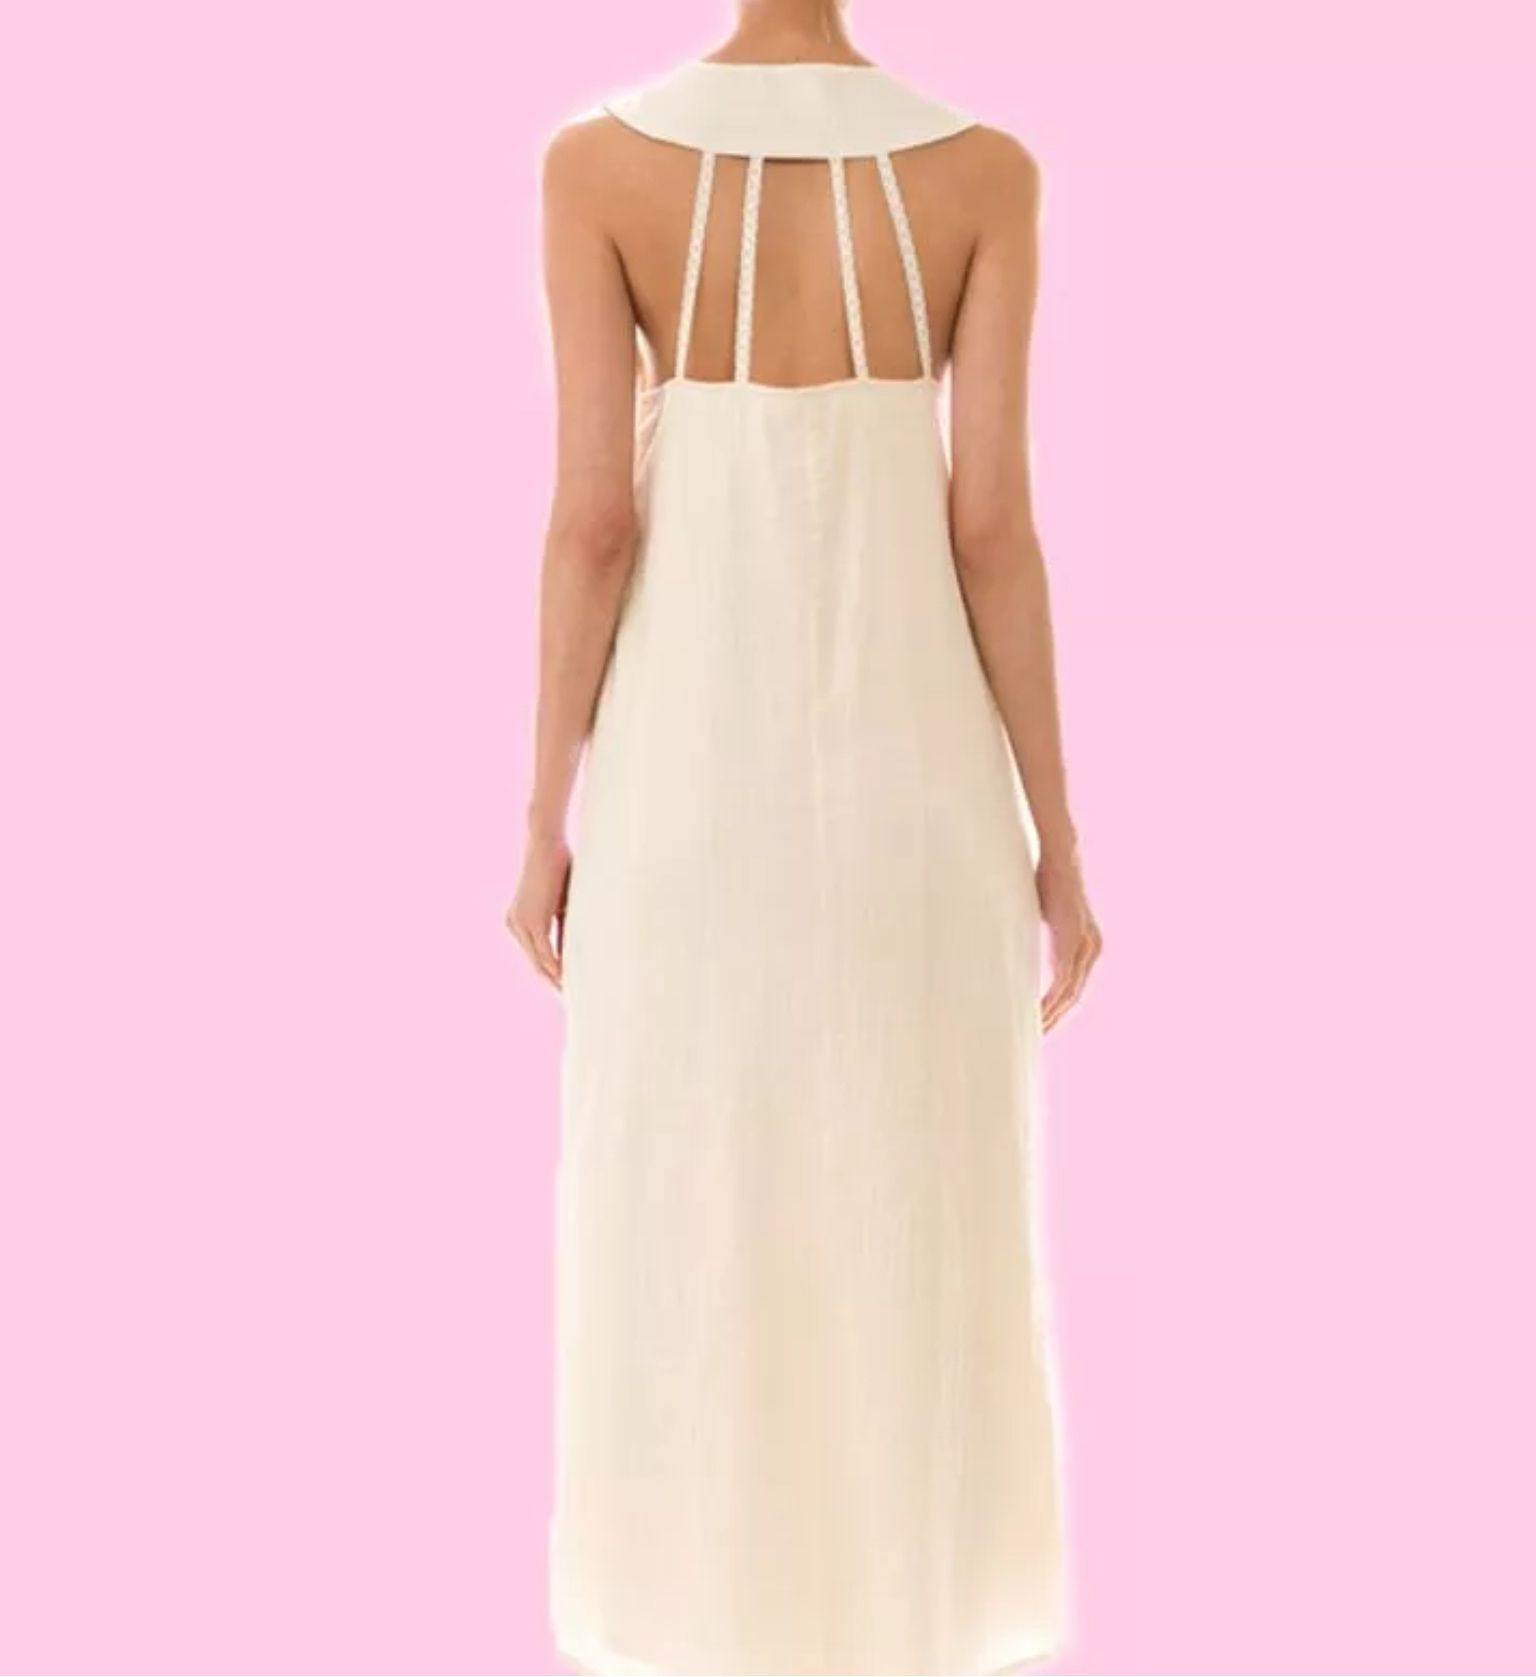 This beautiful fully lined ivory maxi dress features a lace trim